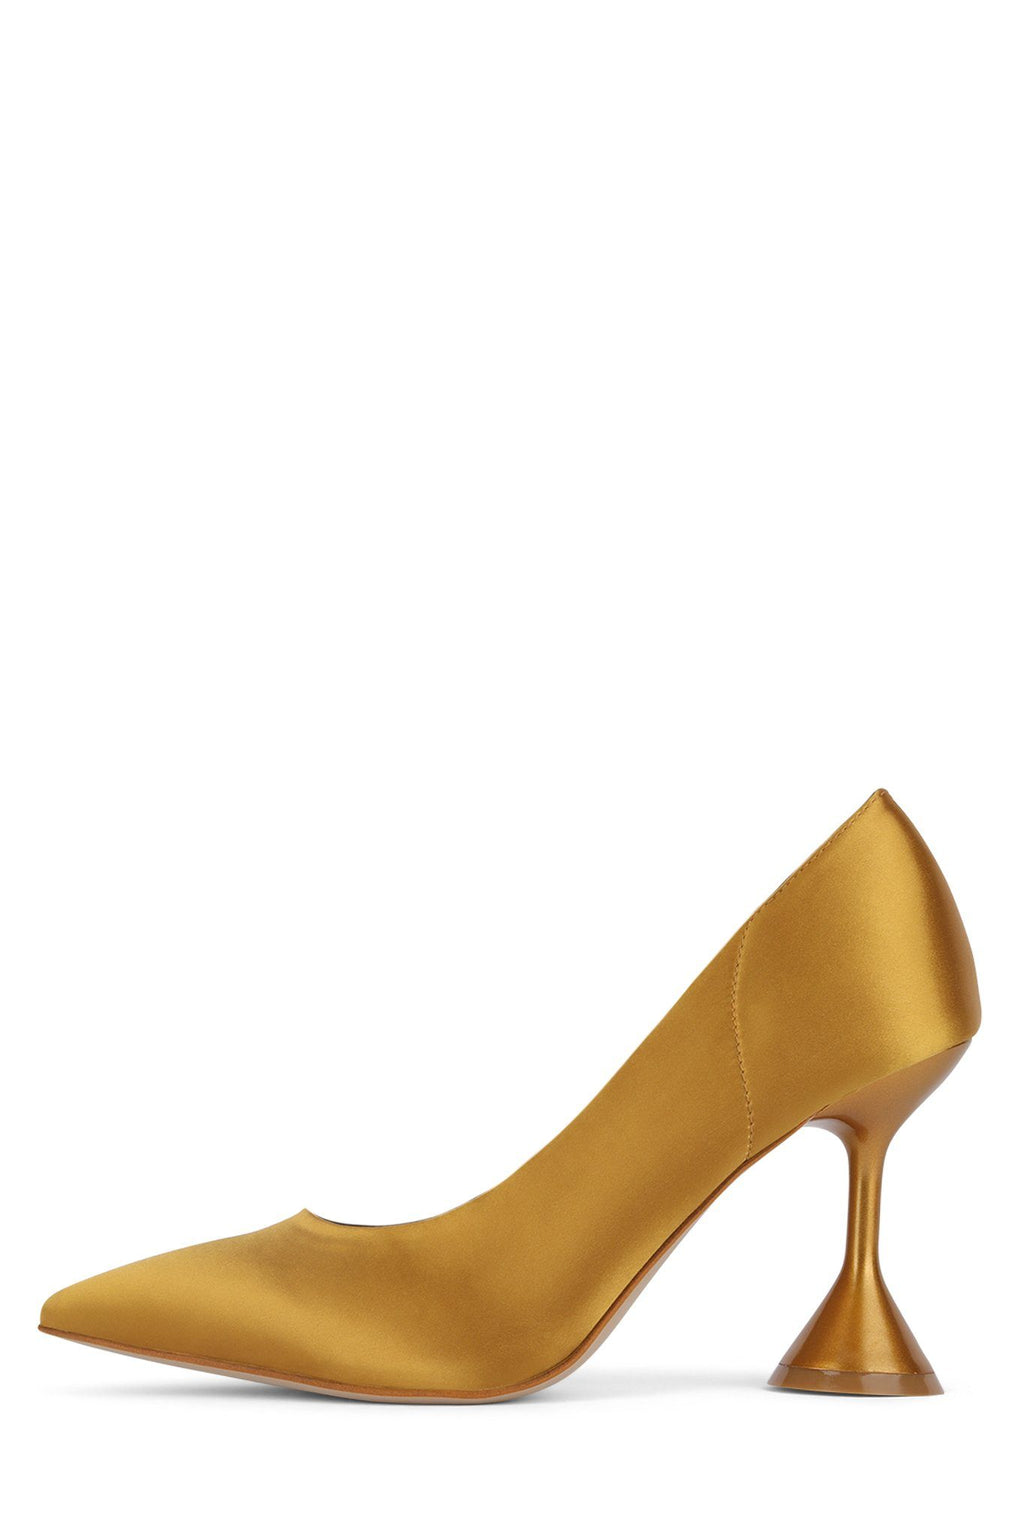 PERLAH-2 Pump ST Yellow Satin 6